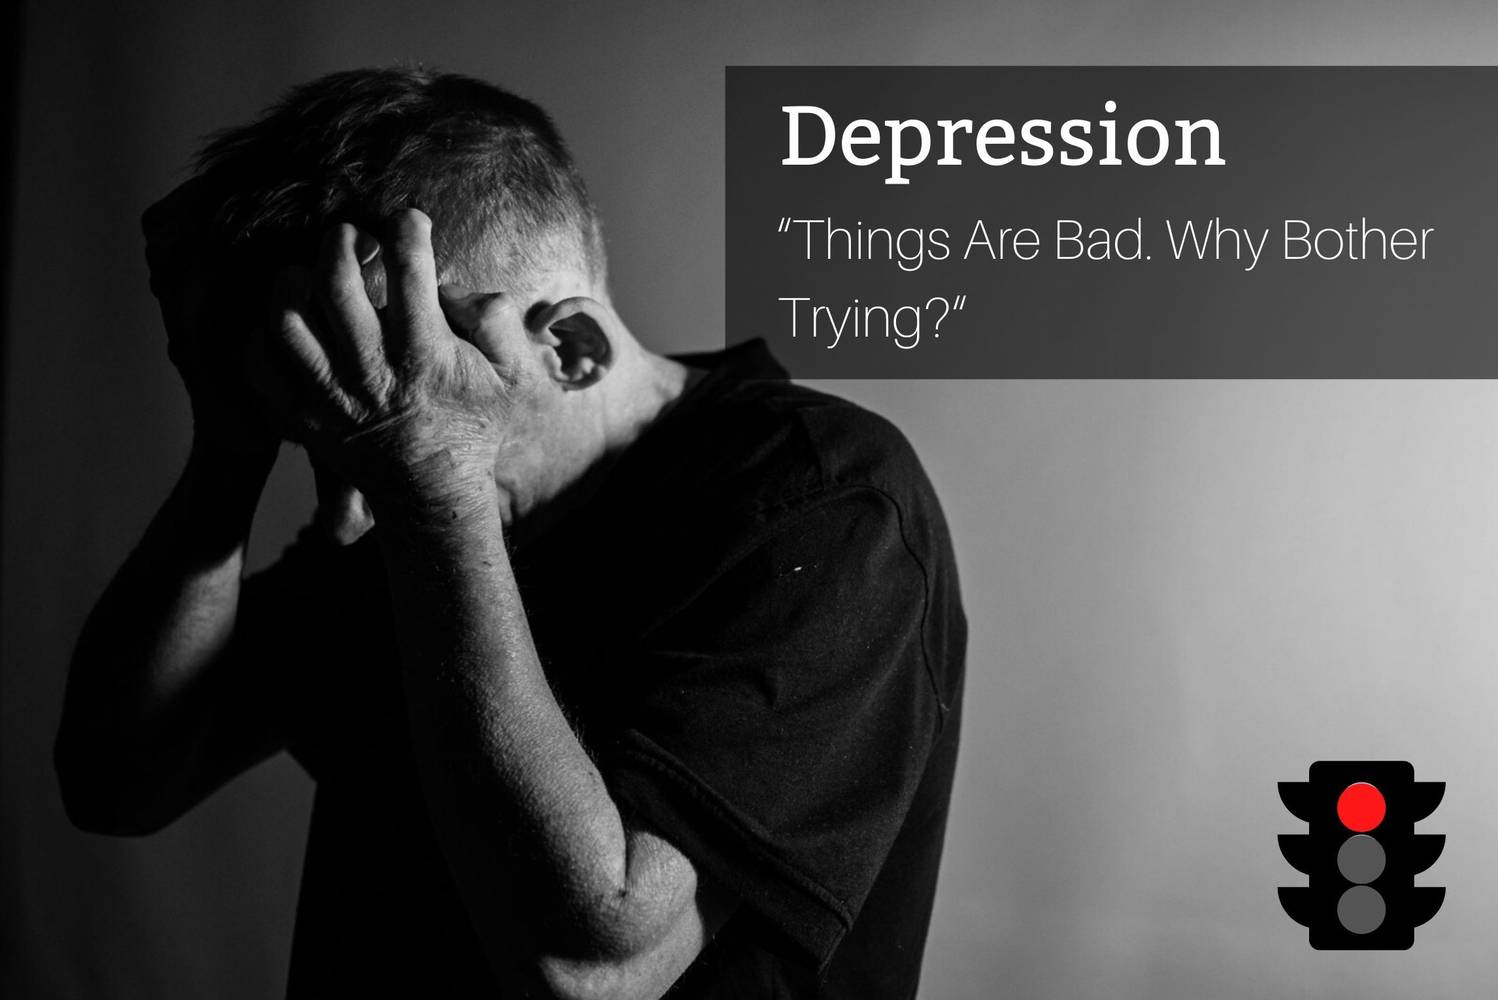 DEPRESSION: Gives Up, Returns To A Passive State